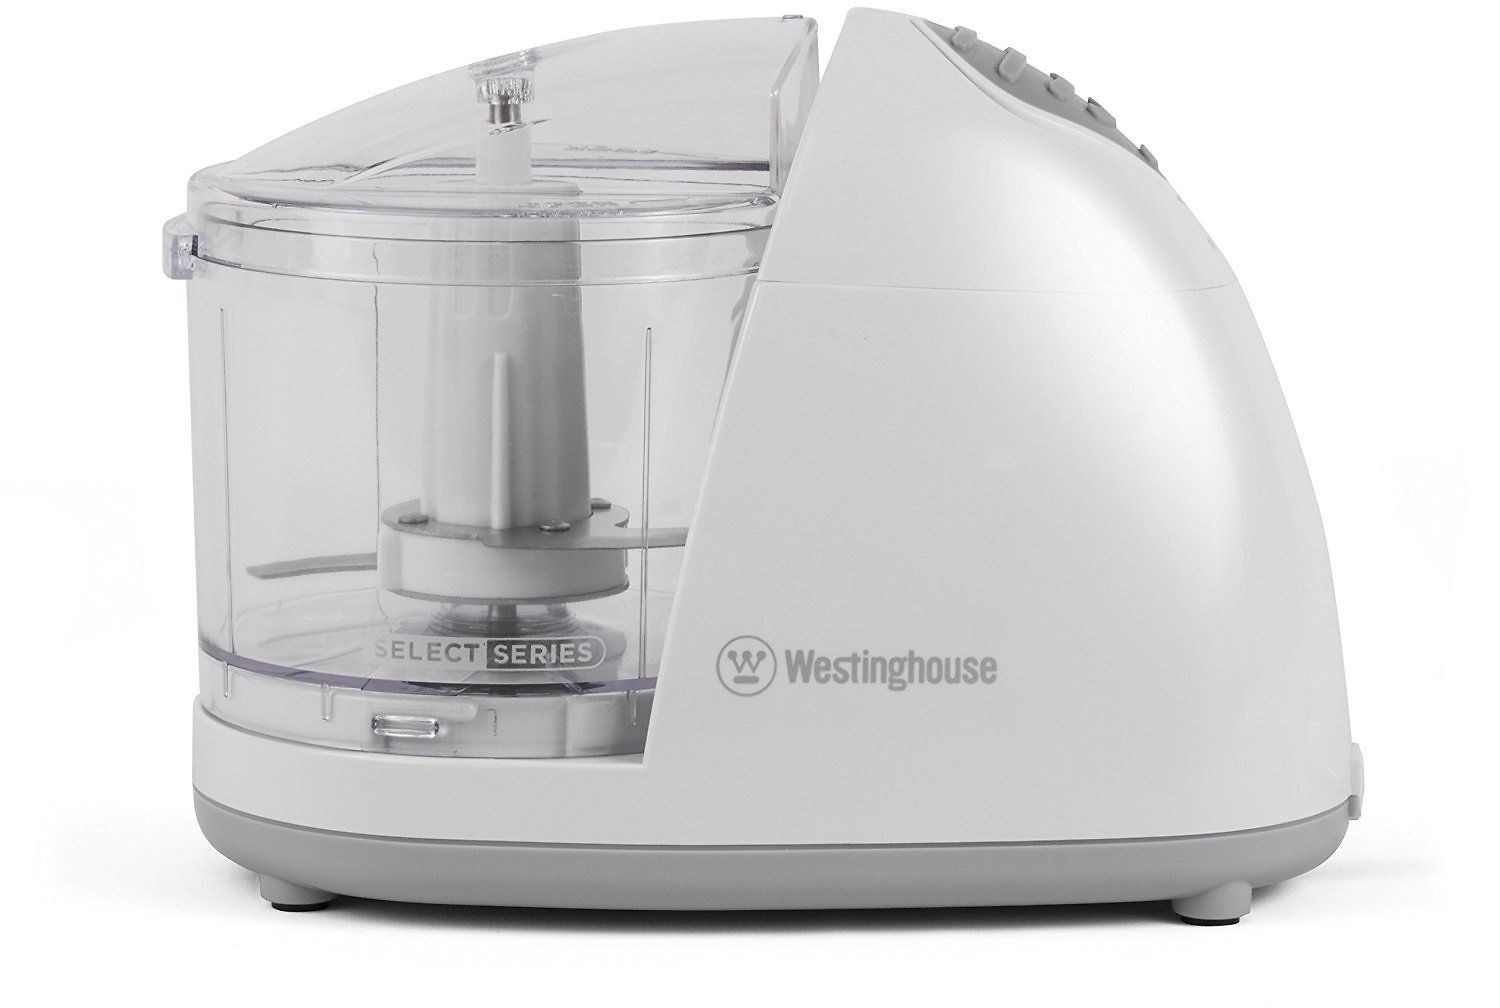 Westinghouse WCH1WA Select Series 1 Cup Electric Food Chopper White ...